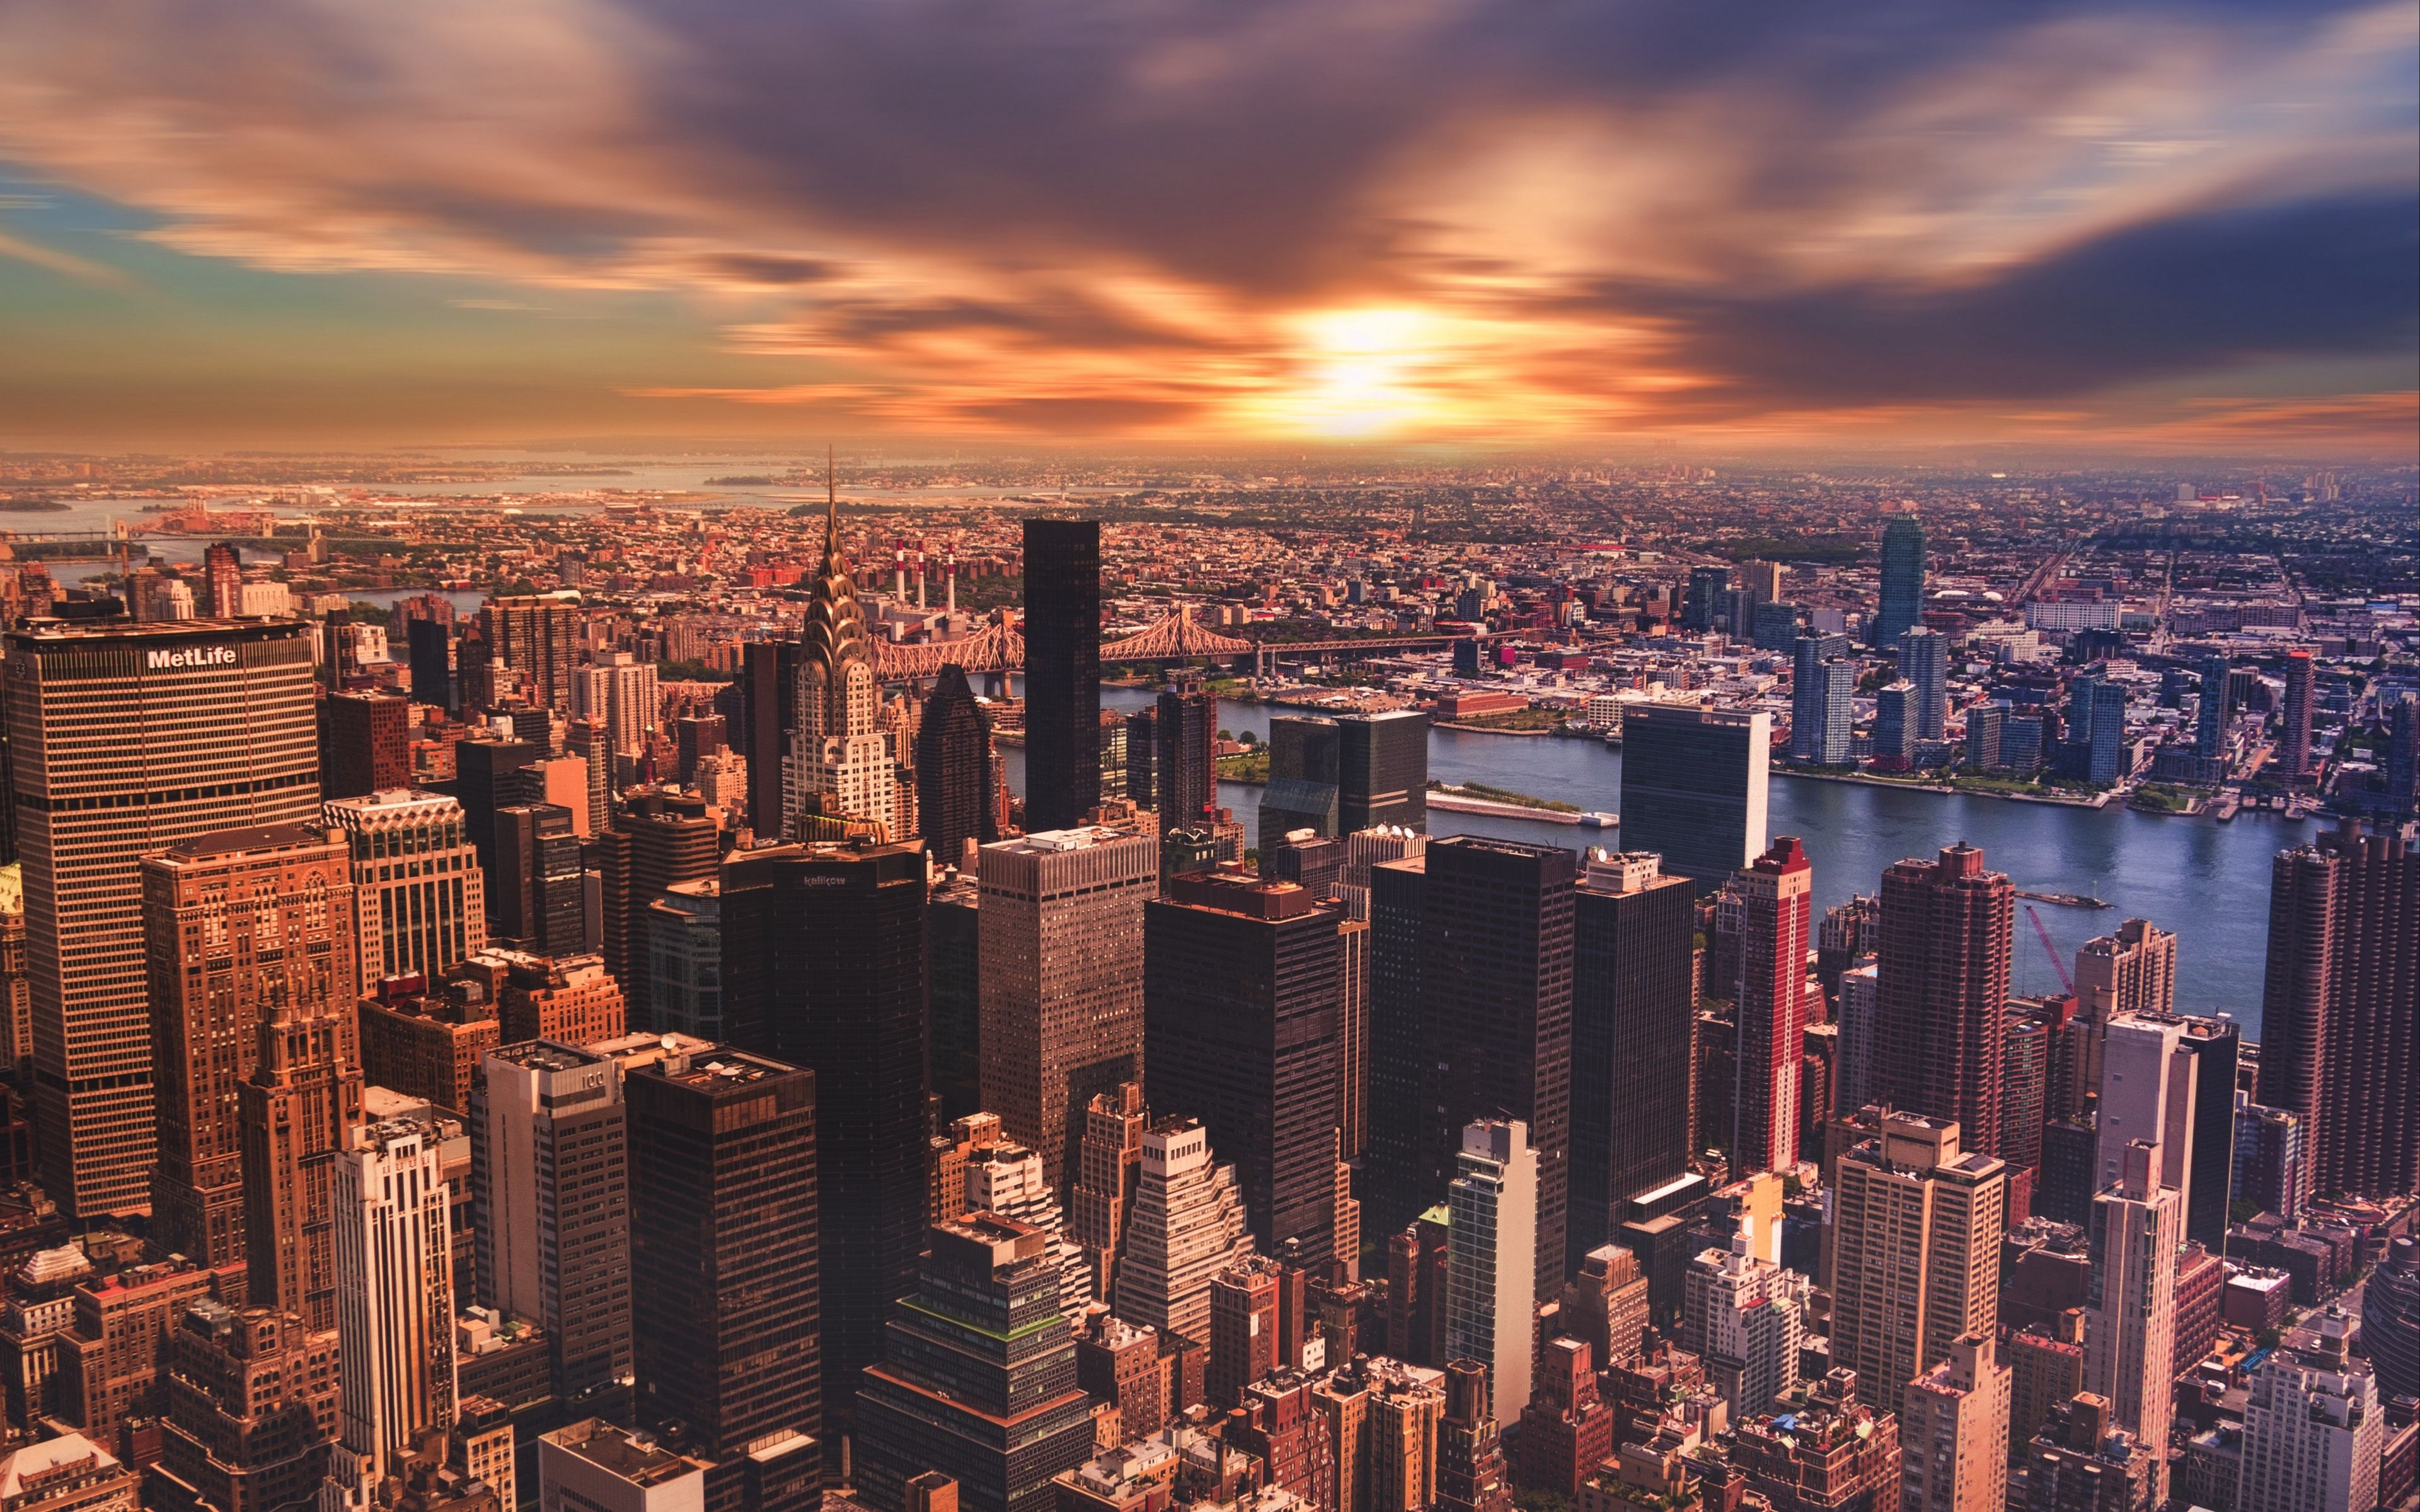 New York 4k Sunset Wallpapers Top Free New York 4k Sunset Backgrounds Wallpaperaccess